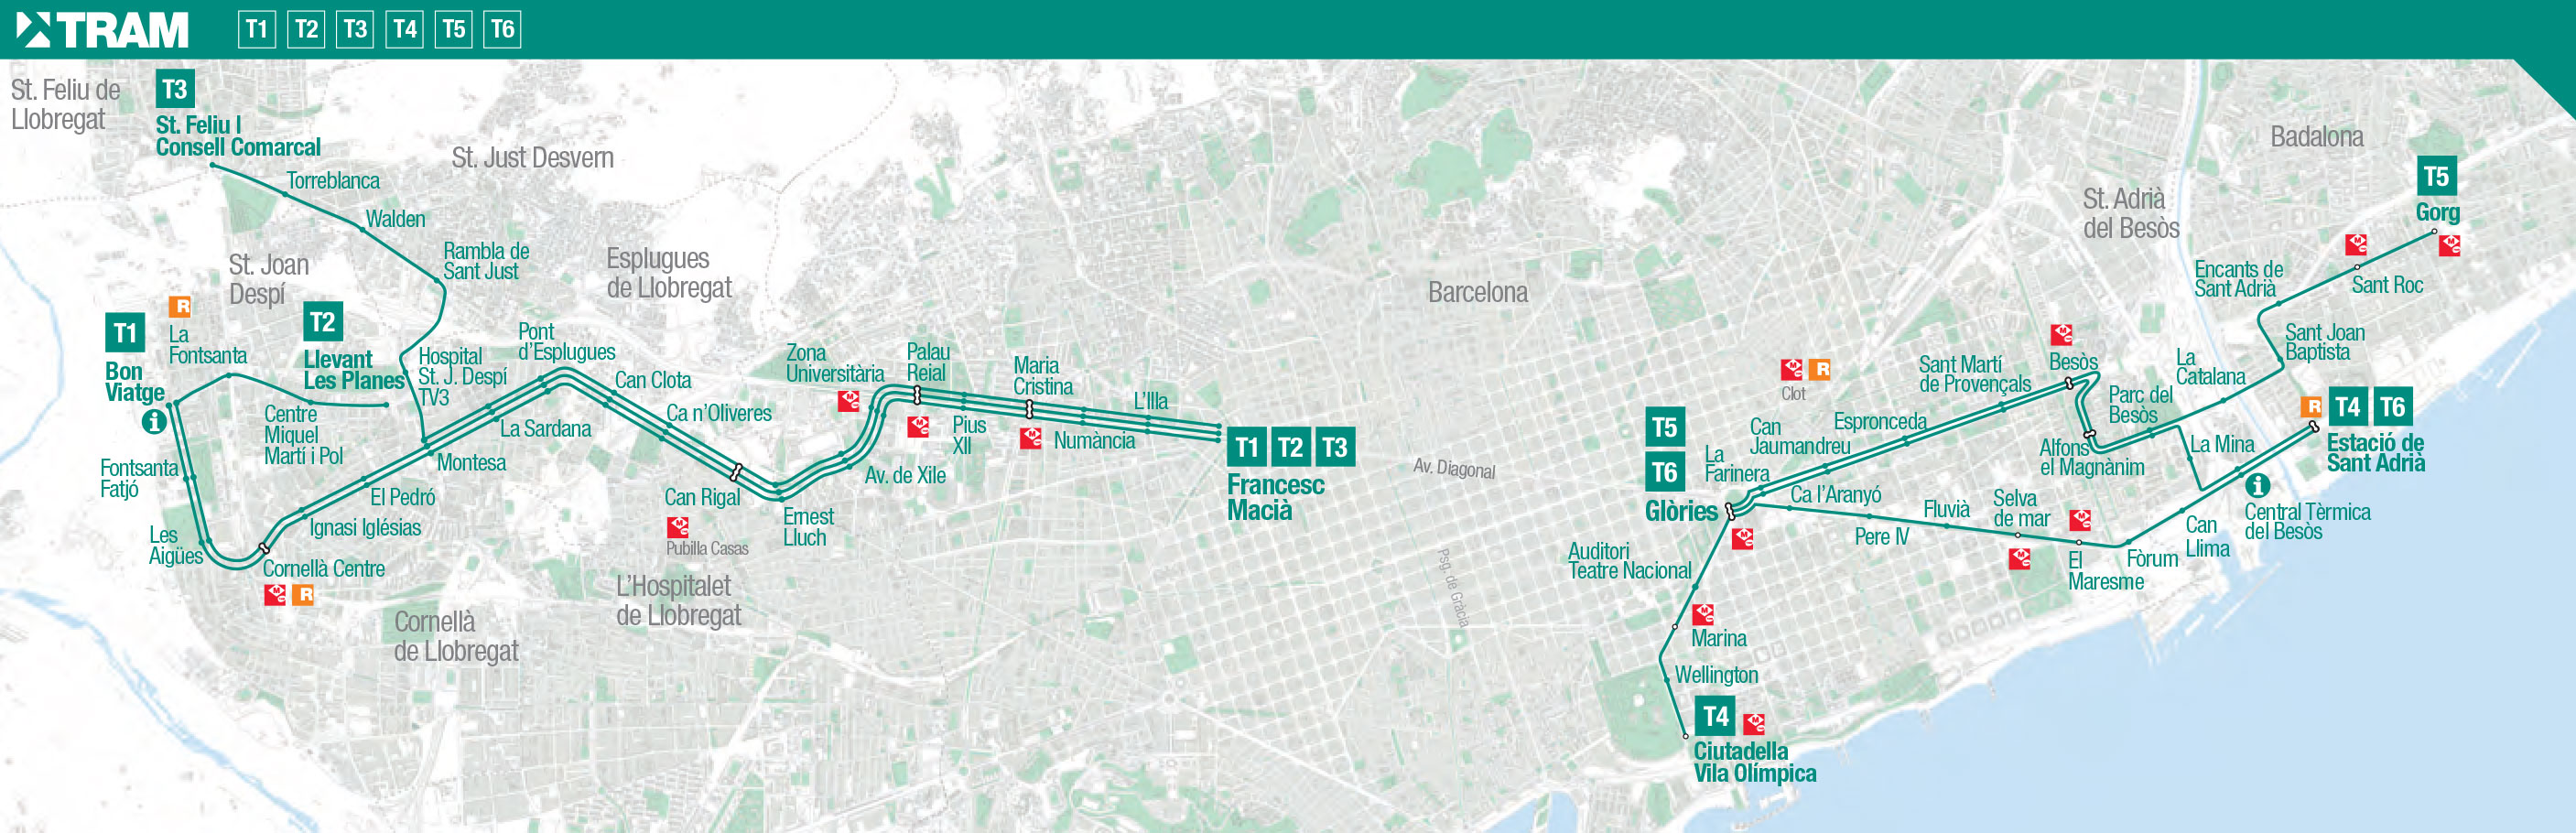 Map of Barcelona tram stations lines